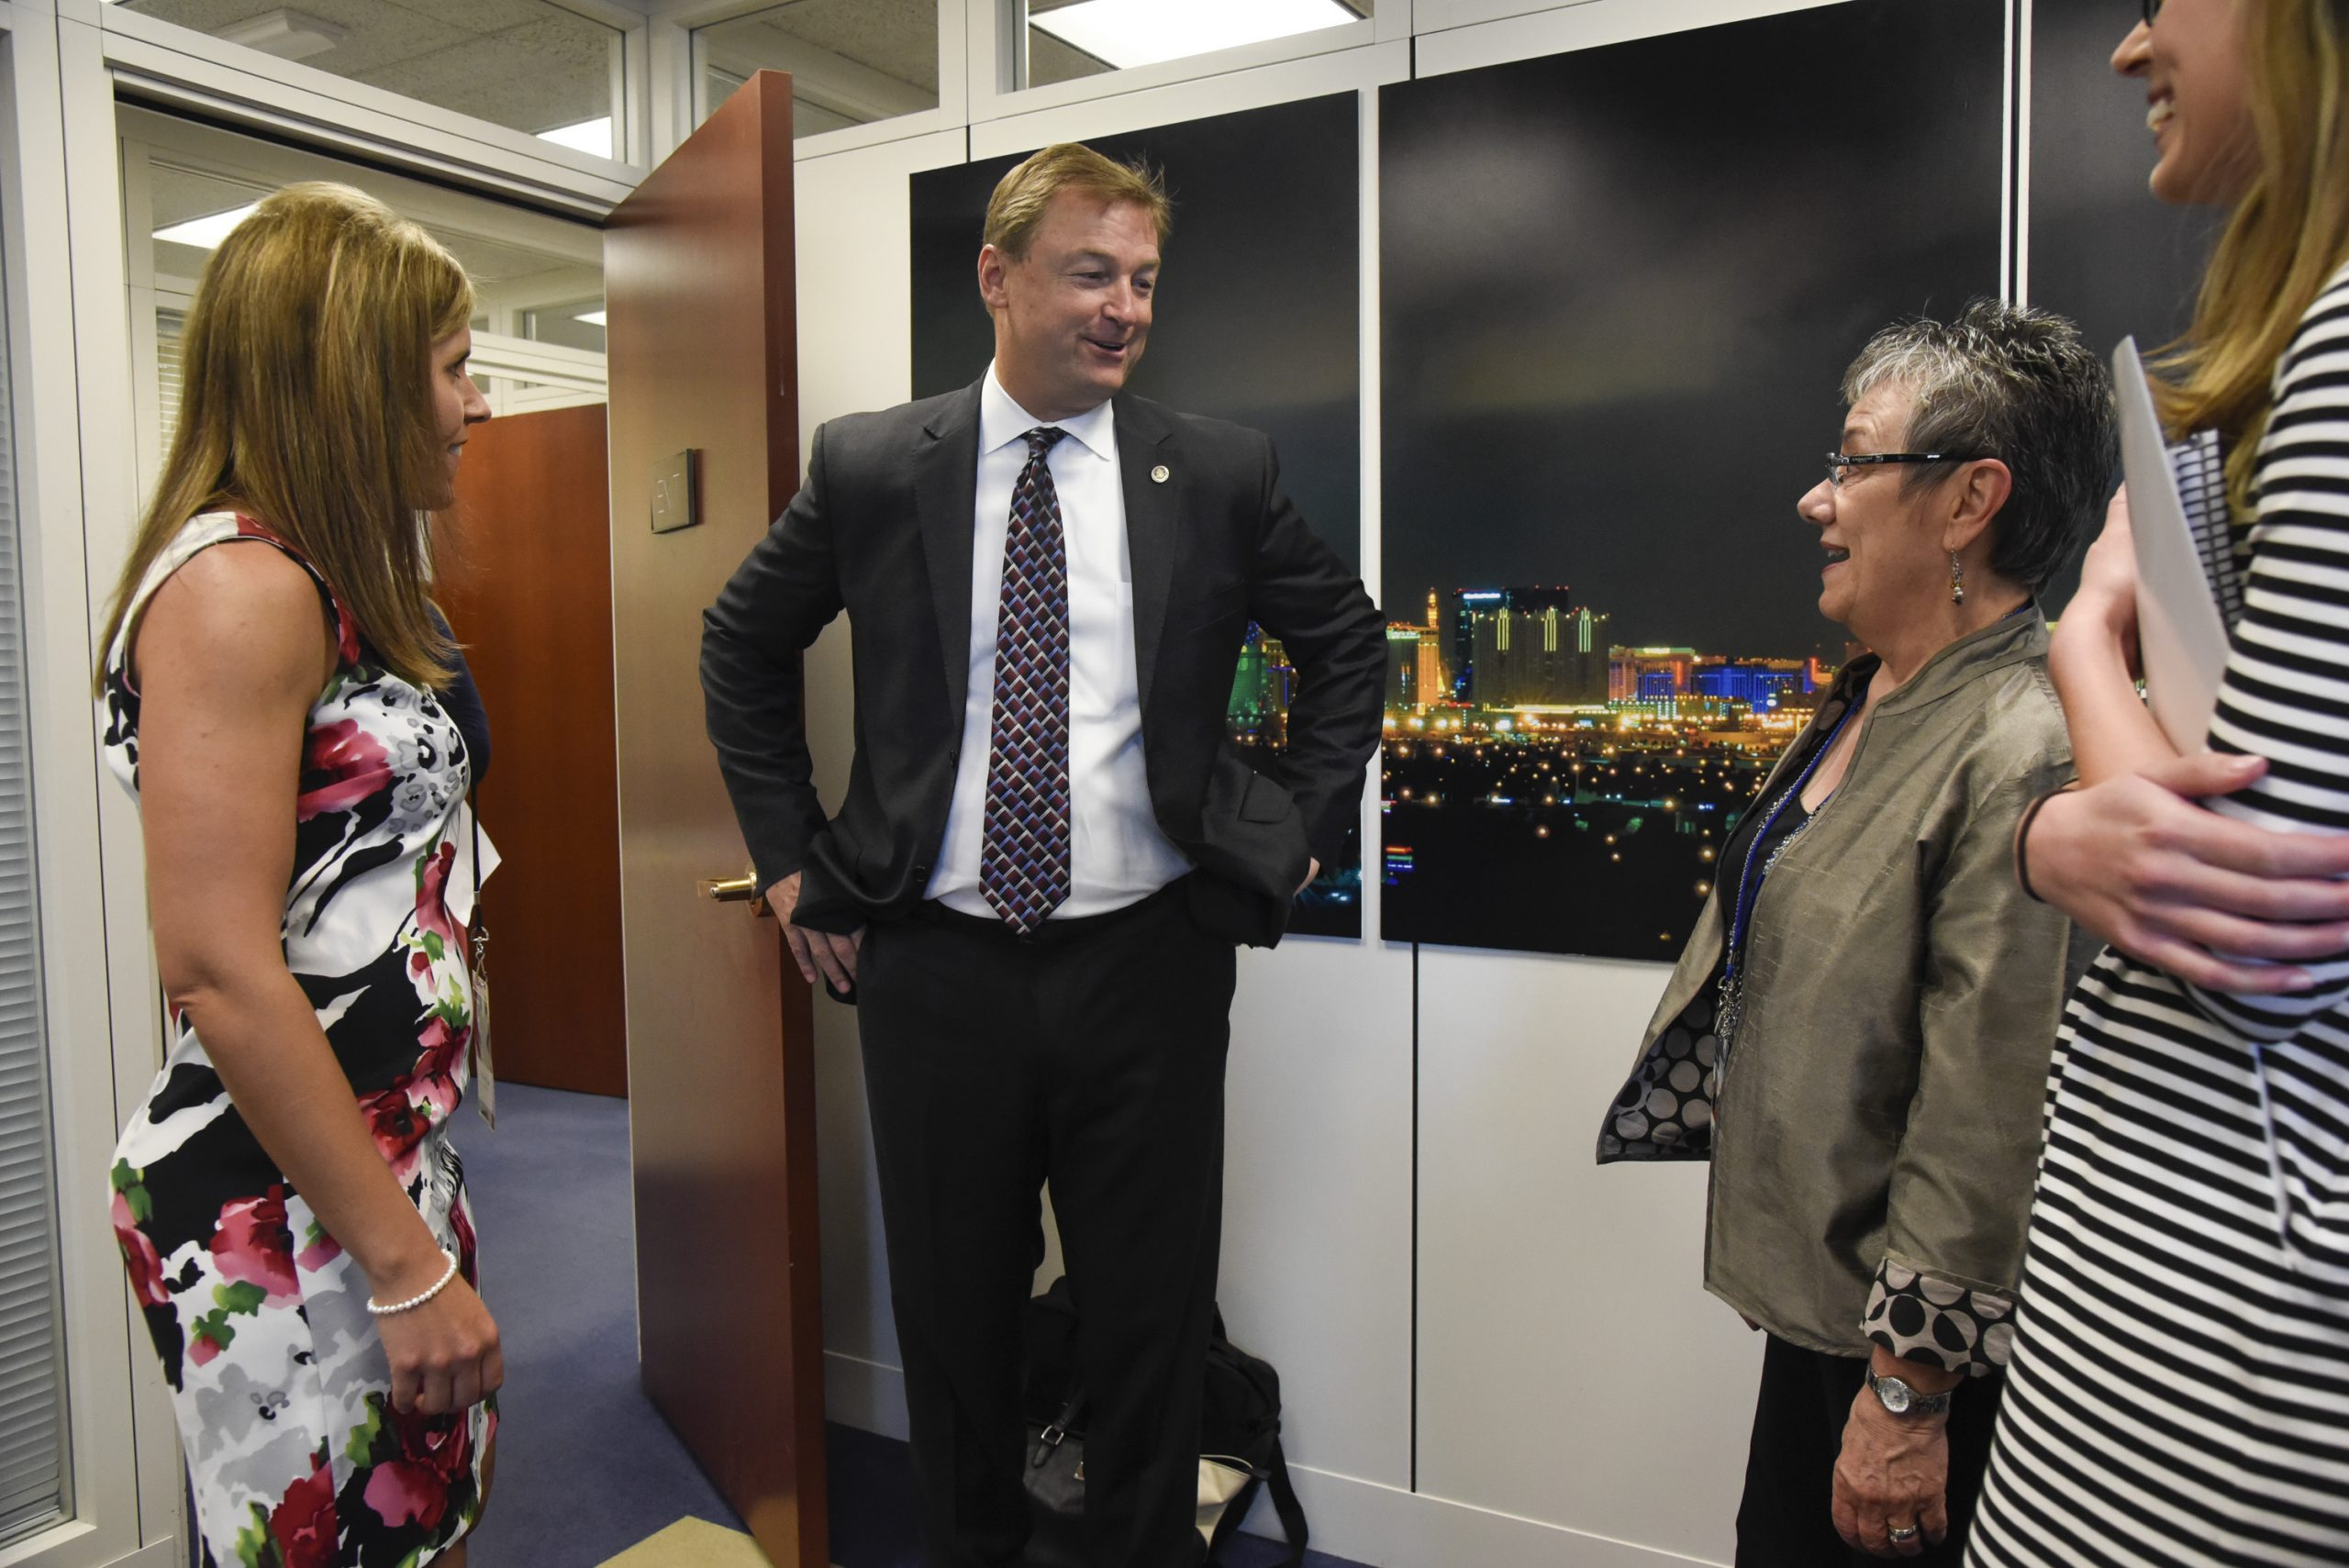 Stacy Clark and Marcia Neel of NAMM meet with Sen. Dean Heller (R-NV) during the NAMM, CMA and VH1 Music Advocacy Day in the U.S. Capitol on May 25, 2016 in Washington, D.C.